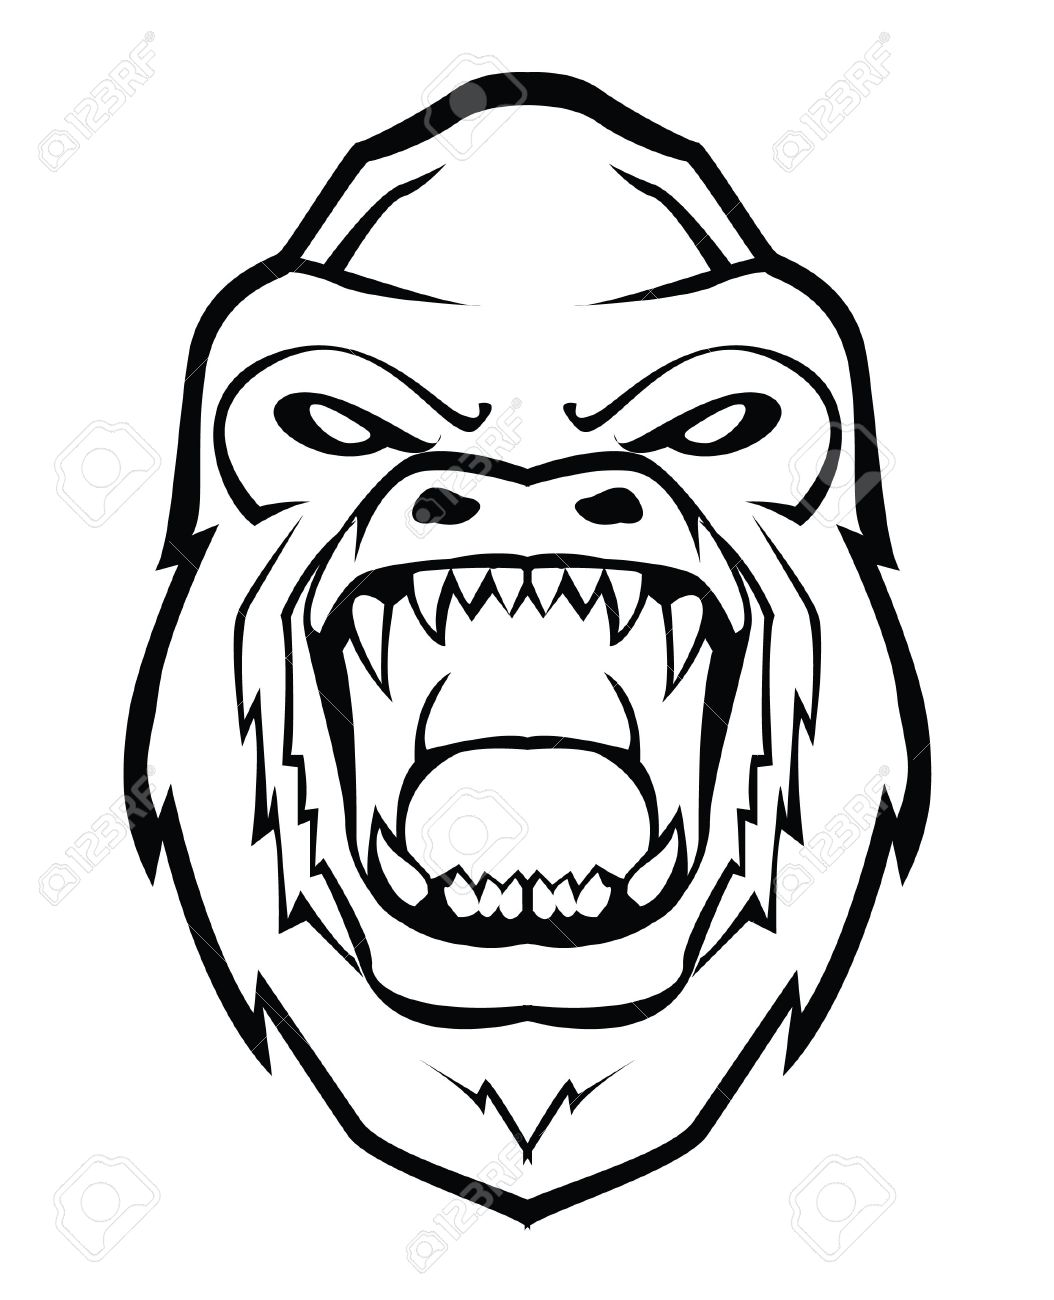 Line Drawing Angry Face : Angry face drawing at getdrawings free for personal